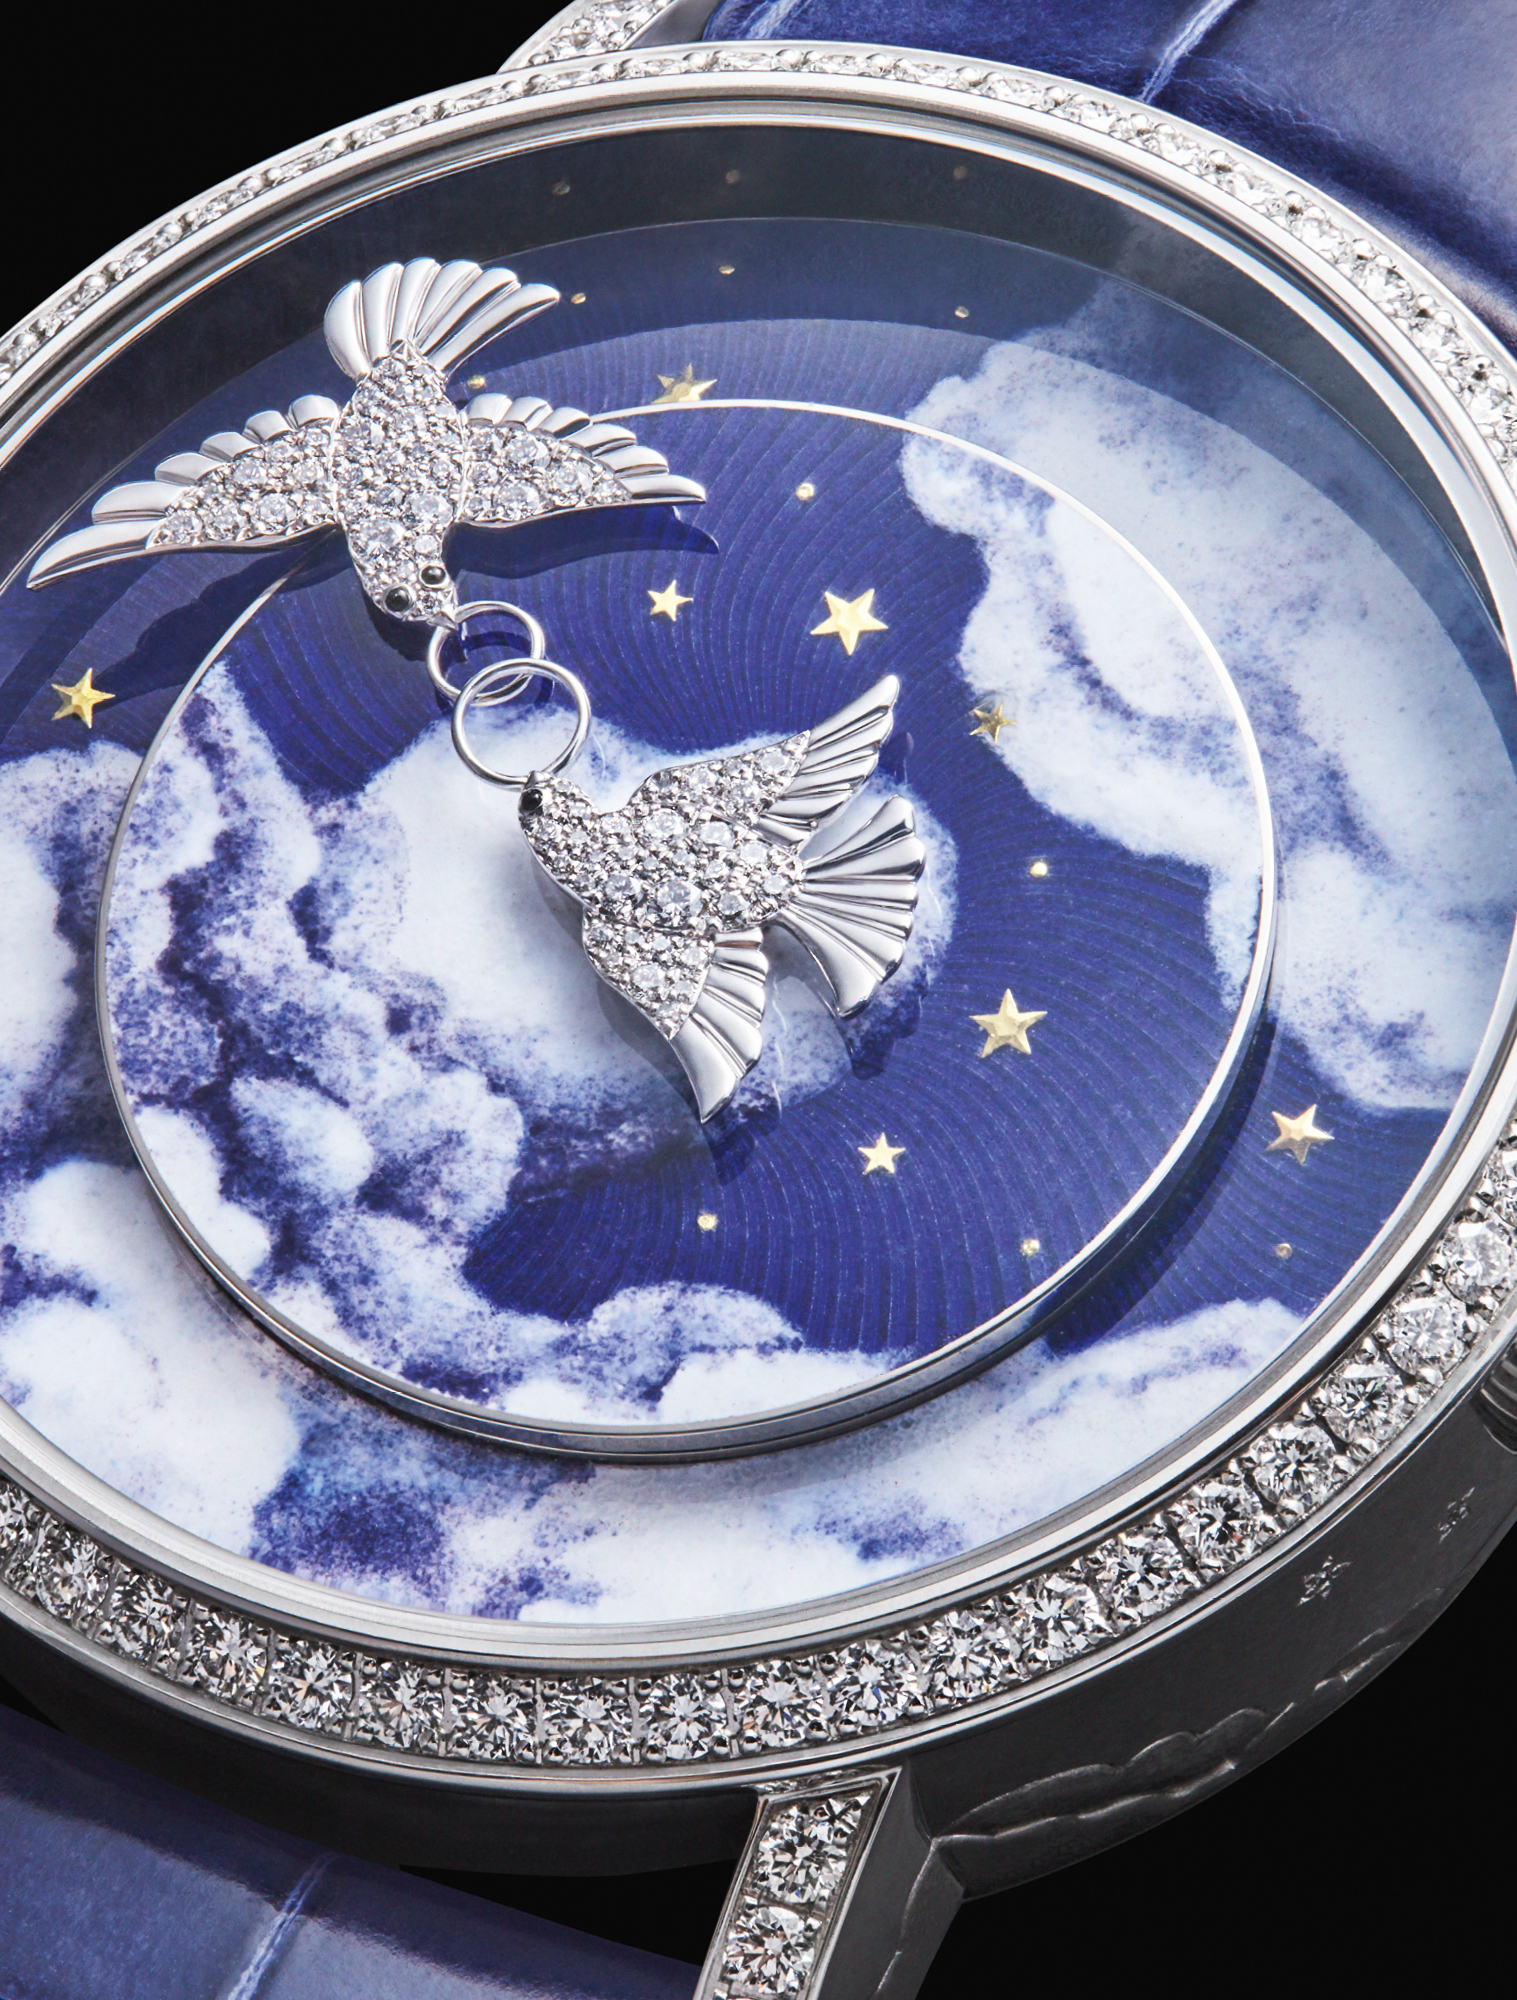 The dial of Chaumet's Complication Créative Colombes features two diamond doves in place of hands, against an enamel blue sky. Every hour, the birds meet and join their rings together to form an 8, representing eternity. £POA, CHAUMET